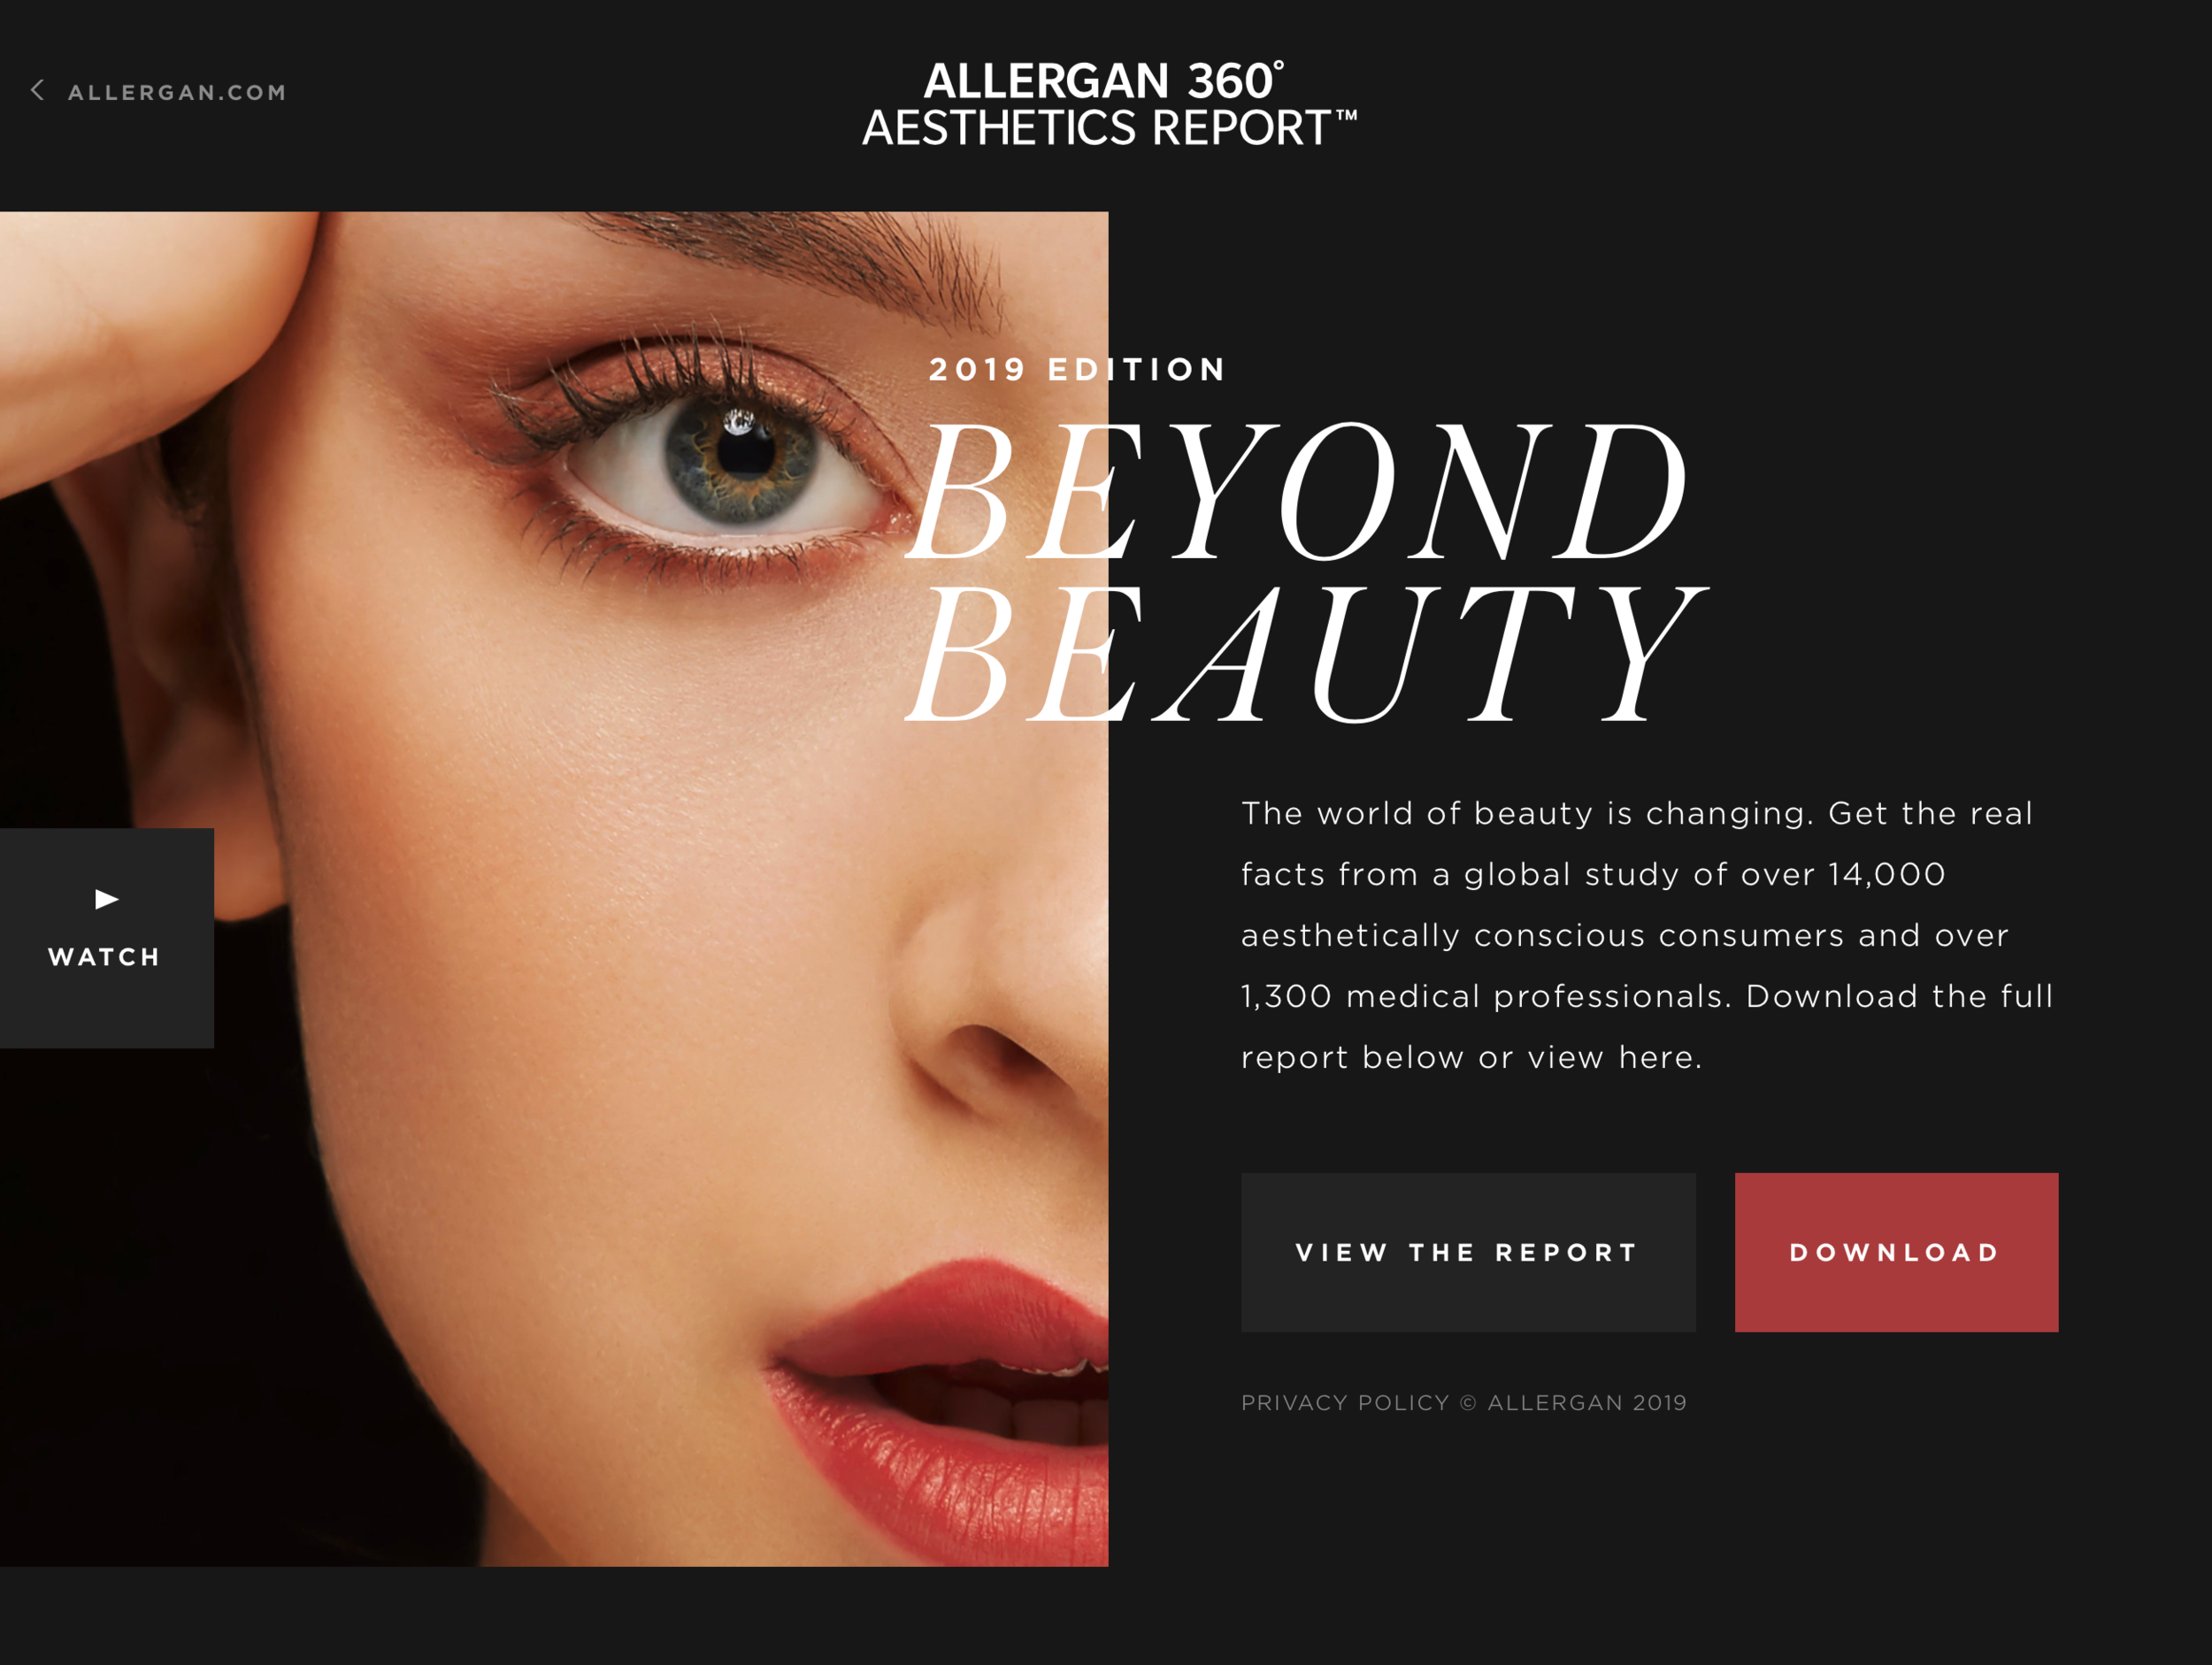 allergan-cosmetic-photographer-beauty-barcelona-leandro-crespi.png